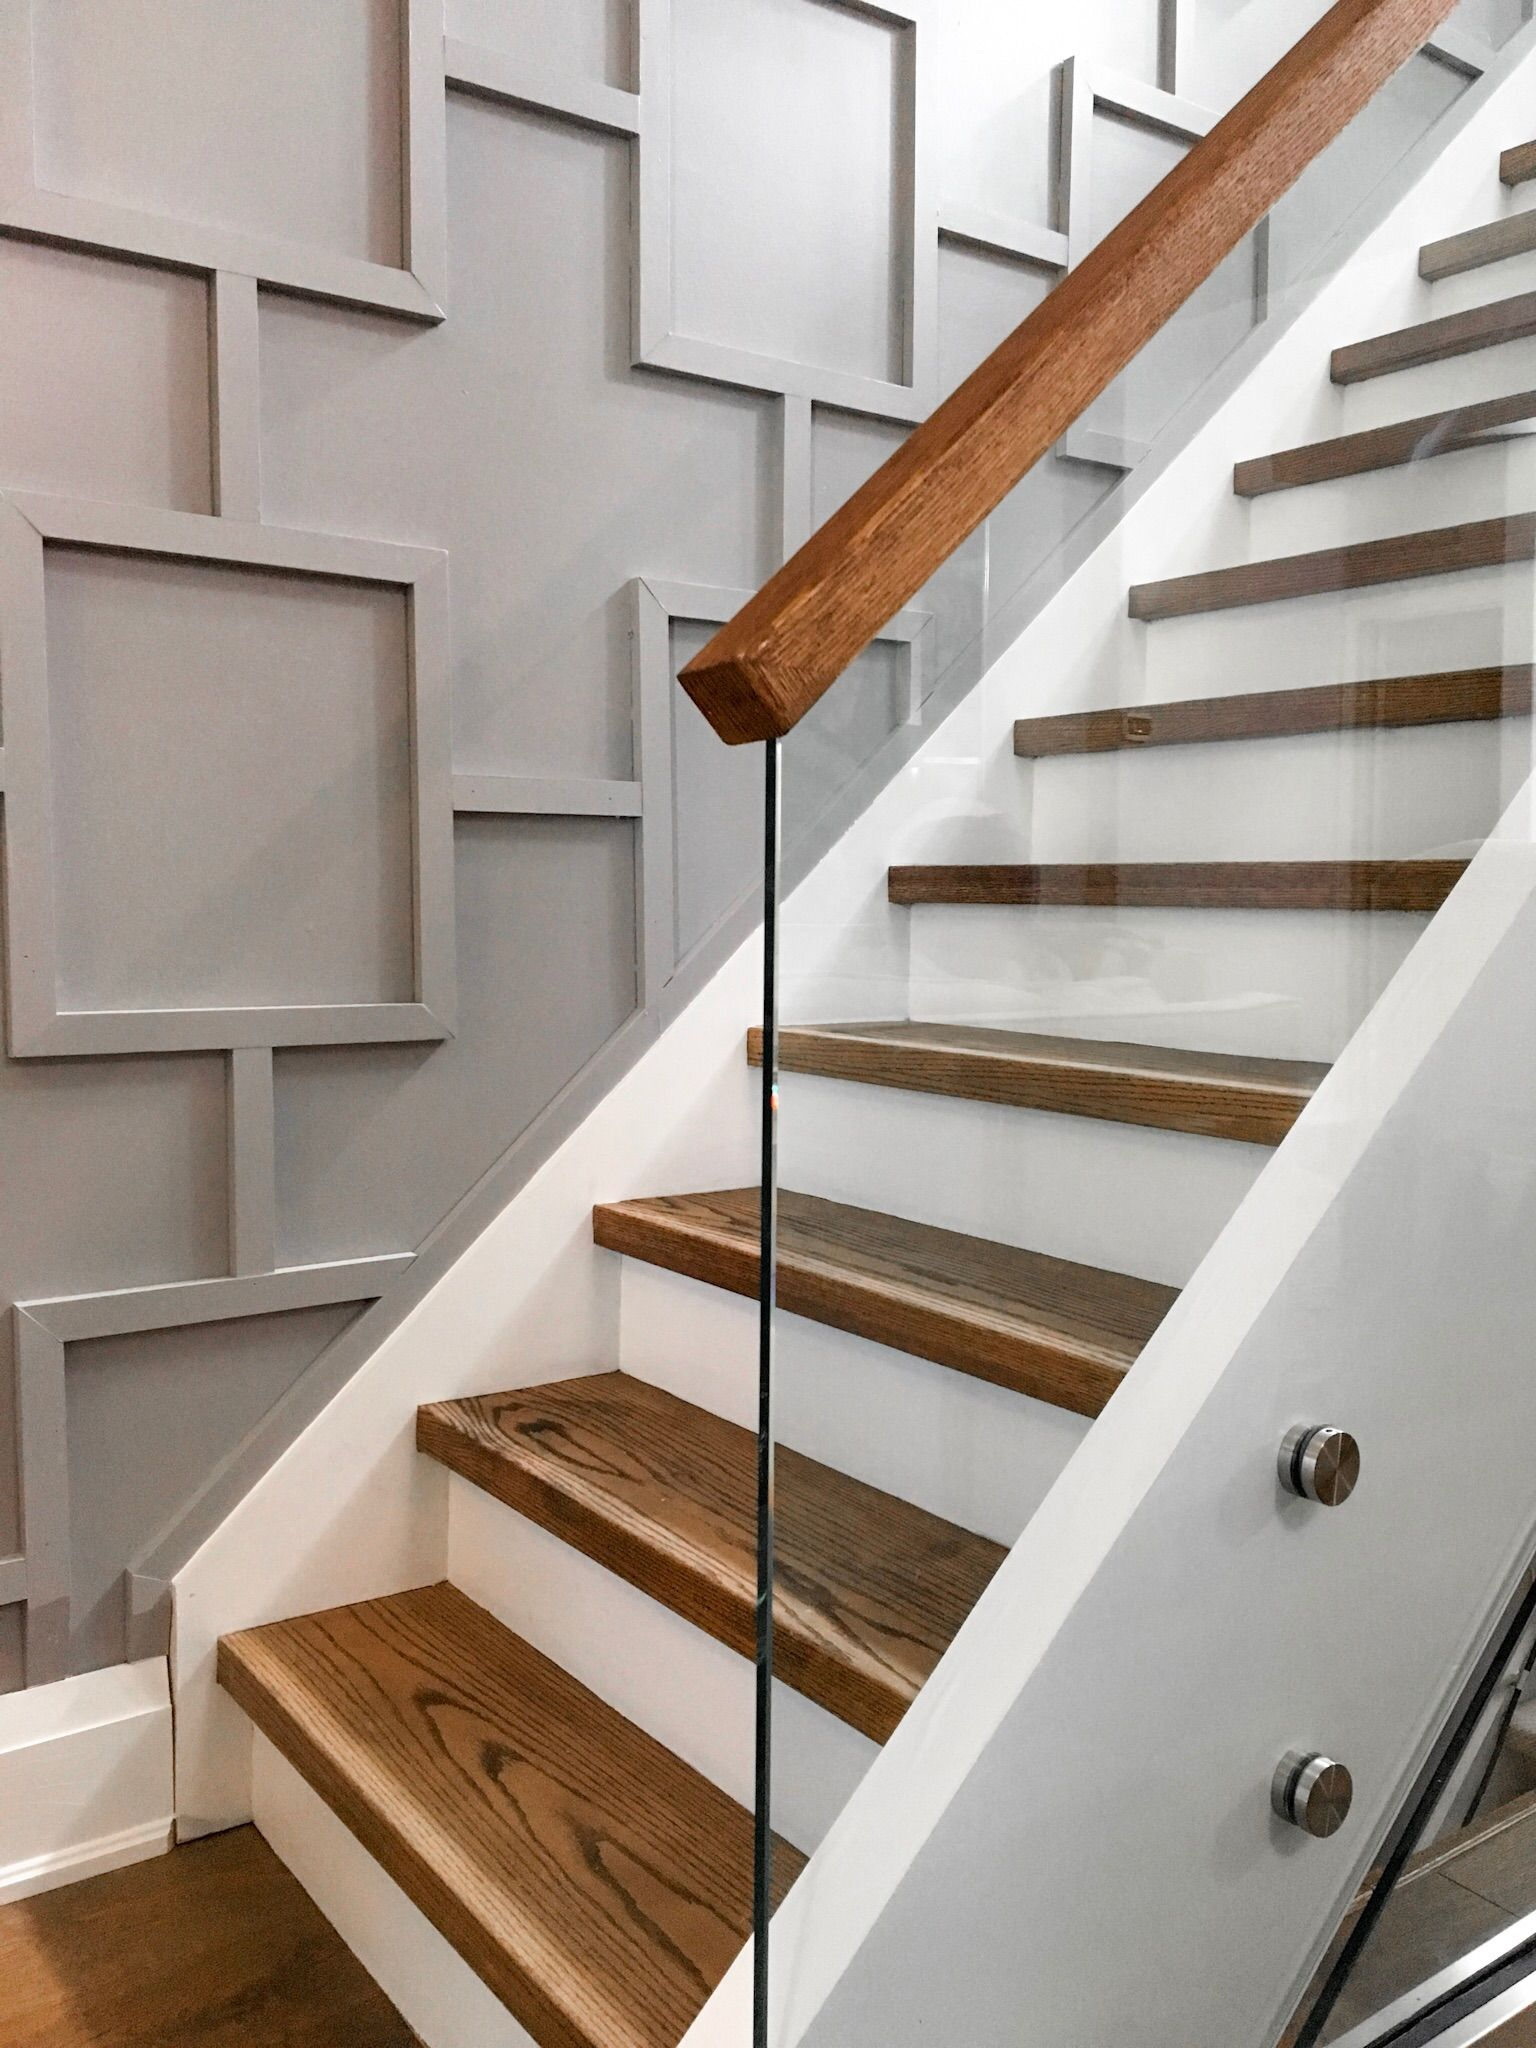 Basement Stair Trim: Glass Staircase With Applied Molding Wall Millwork